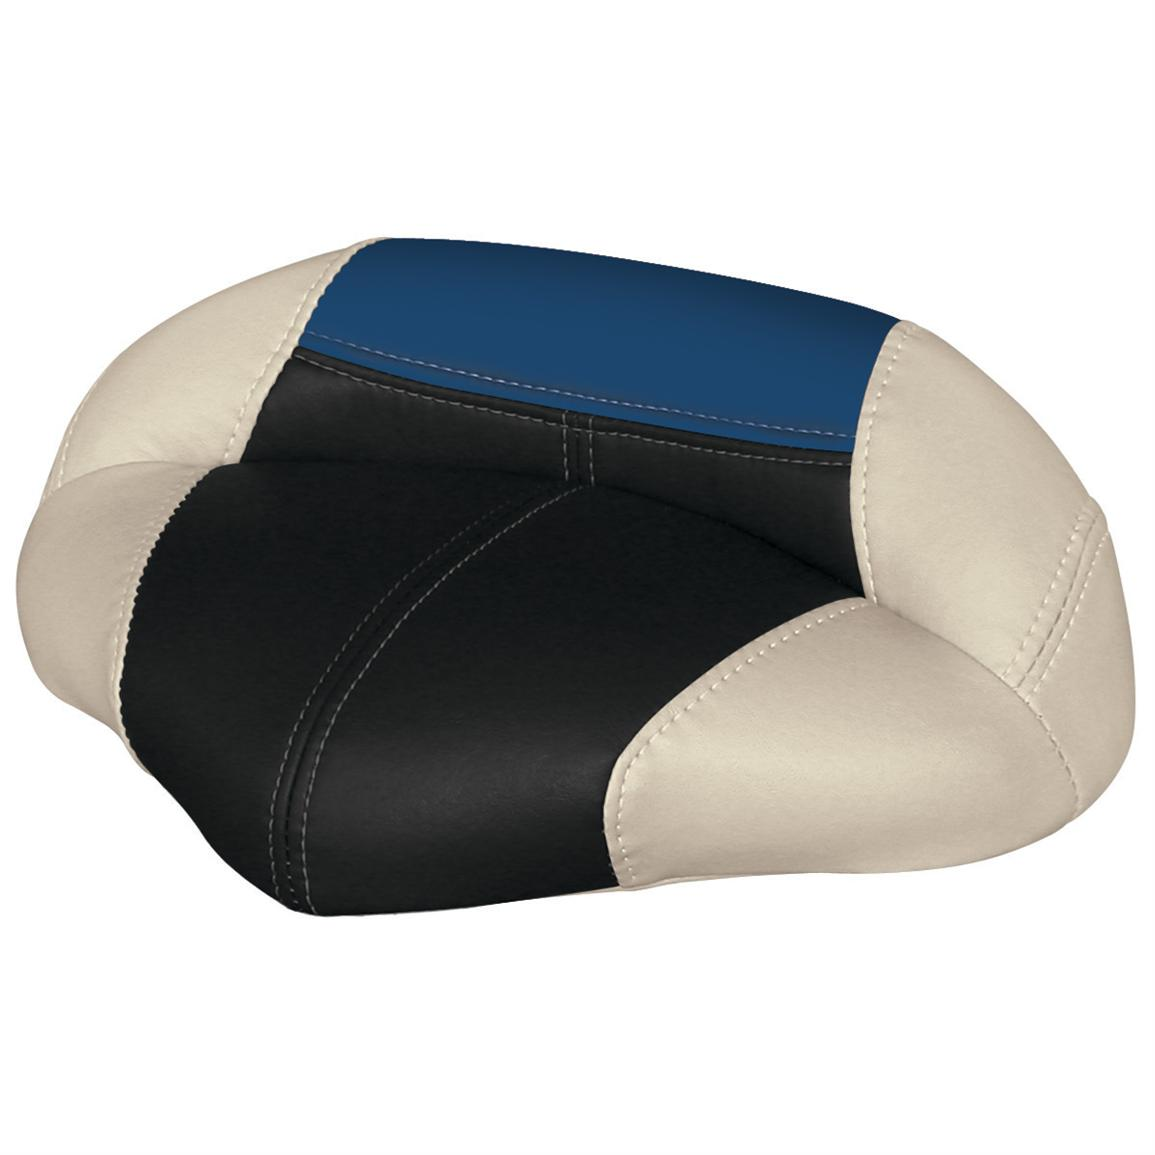 Wise® Blast-Off™ Series Pro Seat, Mushroom / Black / Blue